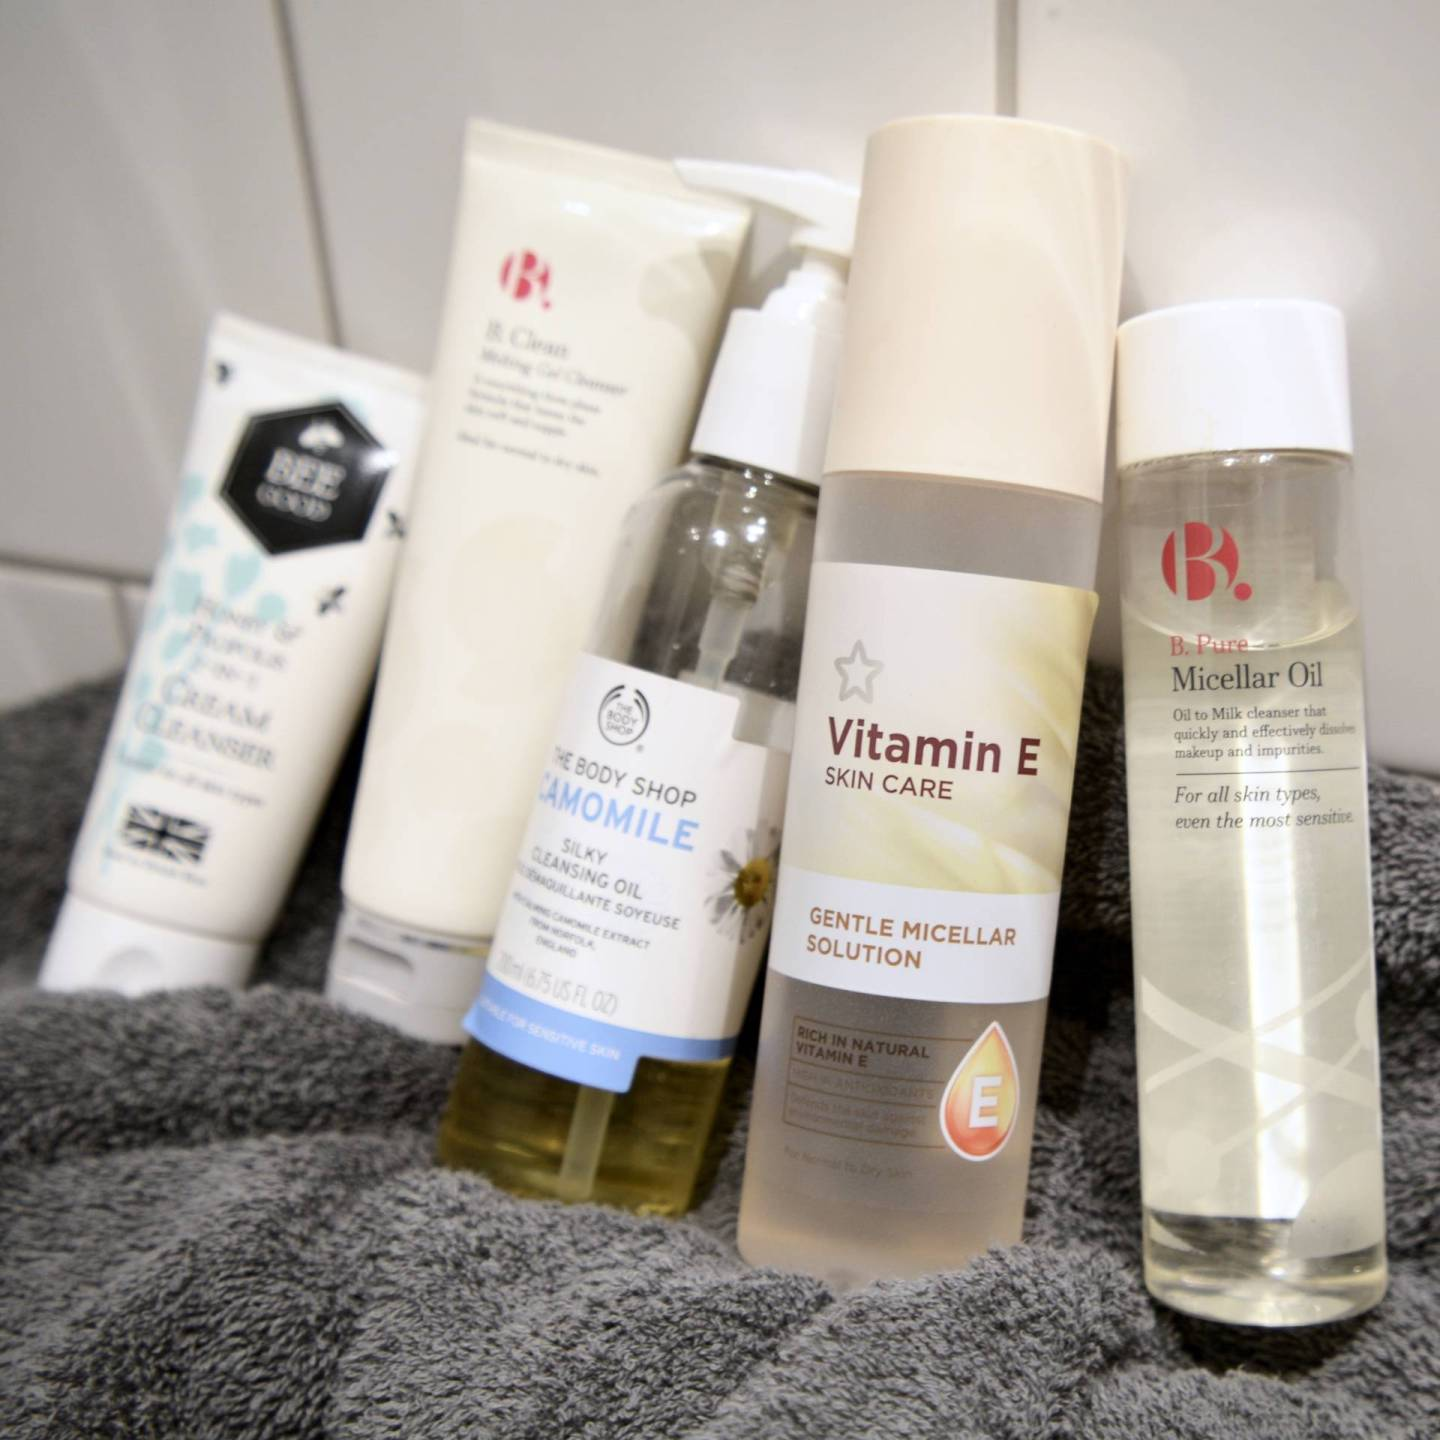 5 best budget cleansers for sensitive skin - Superdrug Vitamin E Micellar Water // Talonted Lex